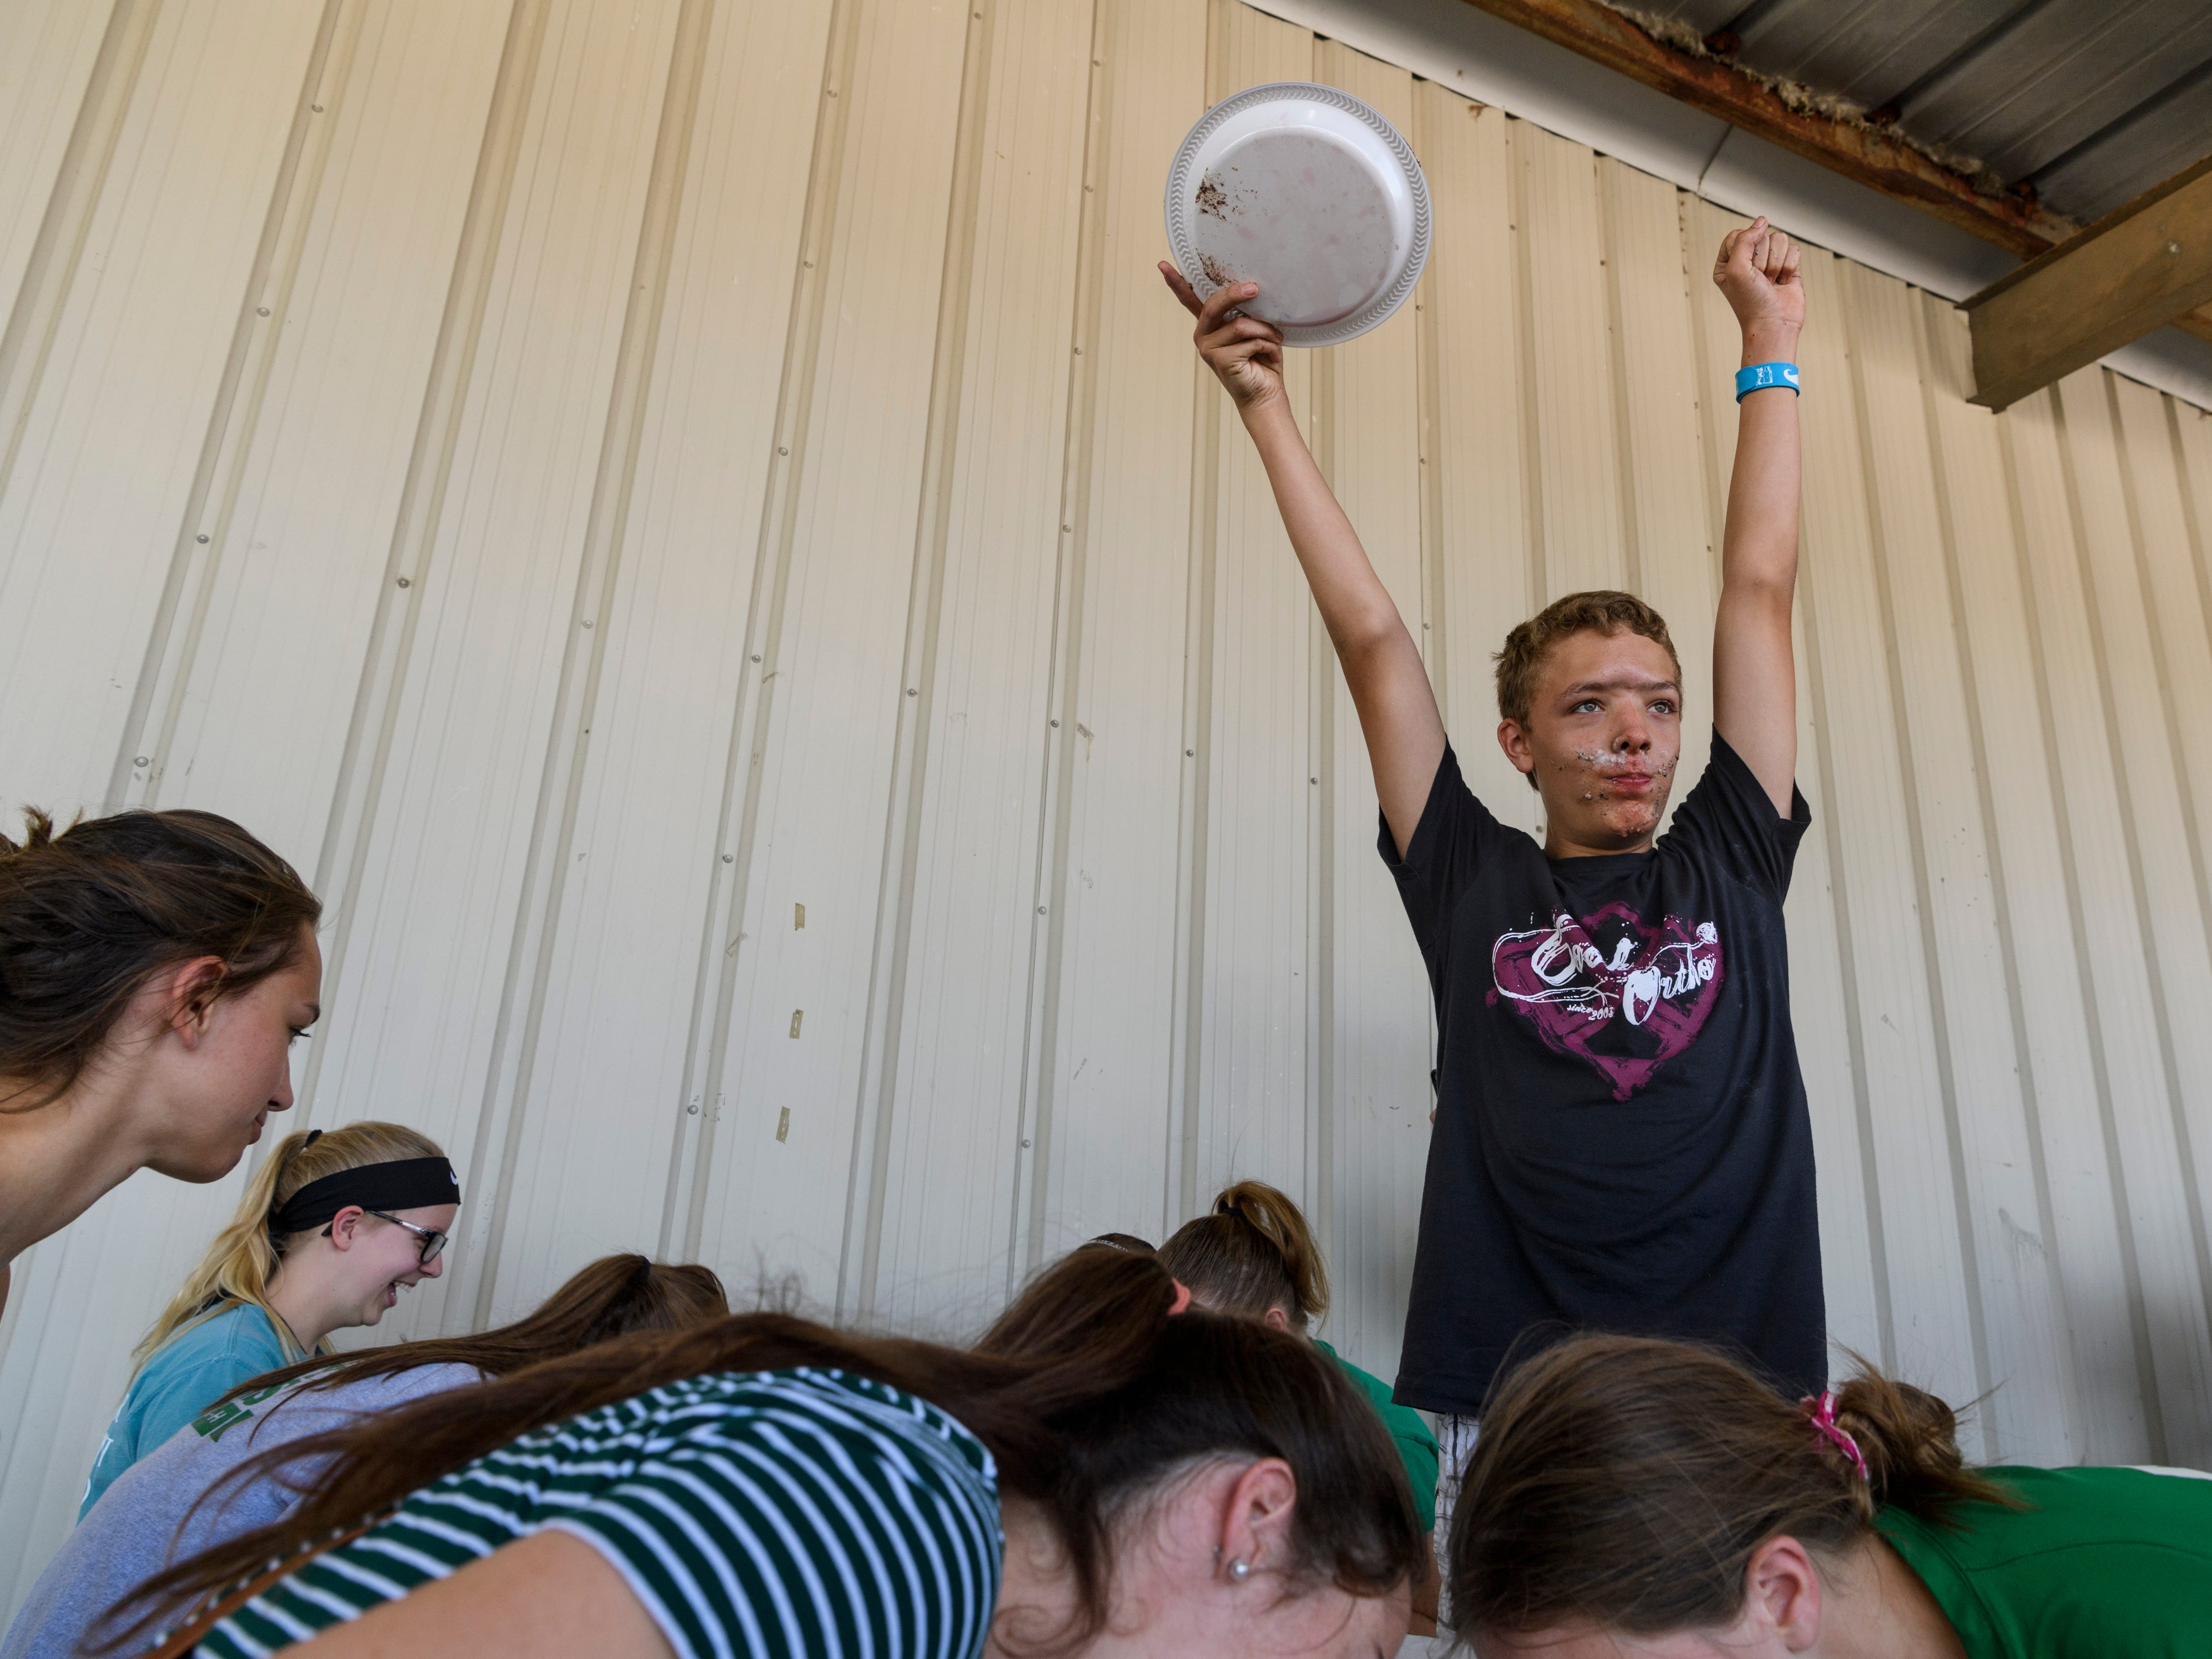 Levi Riggs triumphantly raises his arms up after finishing a piece of watermelon during the Vanderburgh County Fair watermelon eating contest held outside the Banquet Hall at the 4-H Center in Evansville, Ind., Thursday afternoon, July 26, 2018. Remnants of pie were seen on his and other contestants faces because they had competed in the pie eating contest right before digging into juicy watermelon slices.